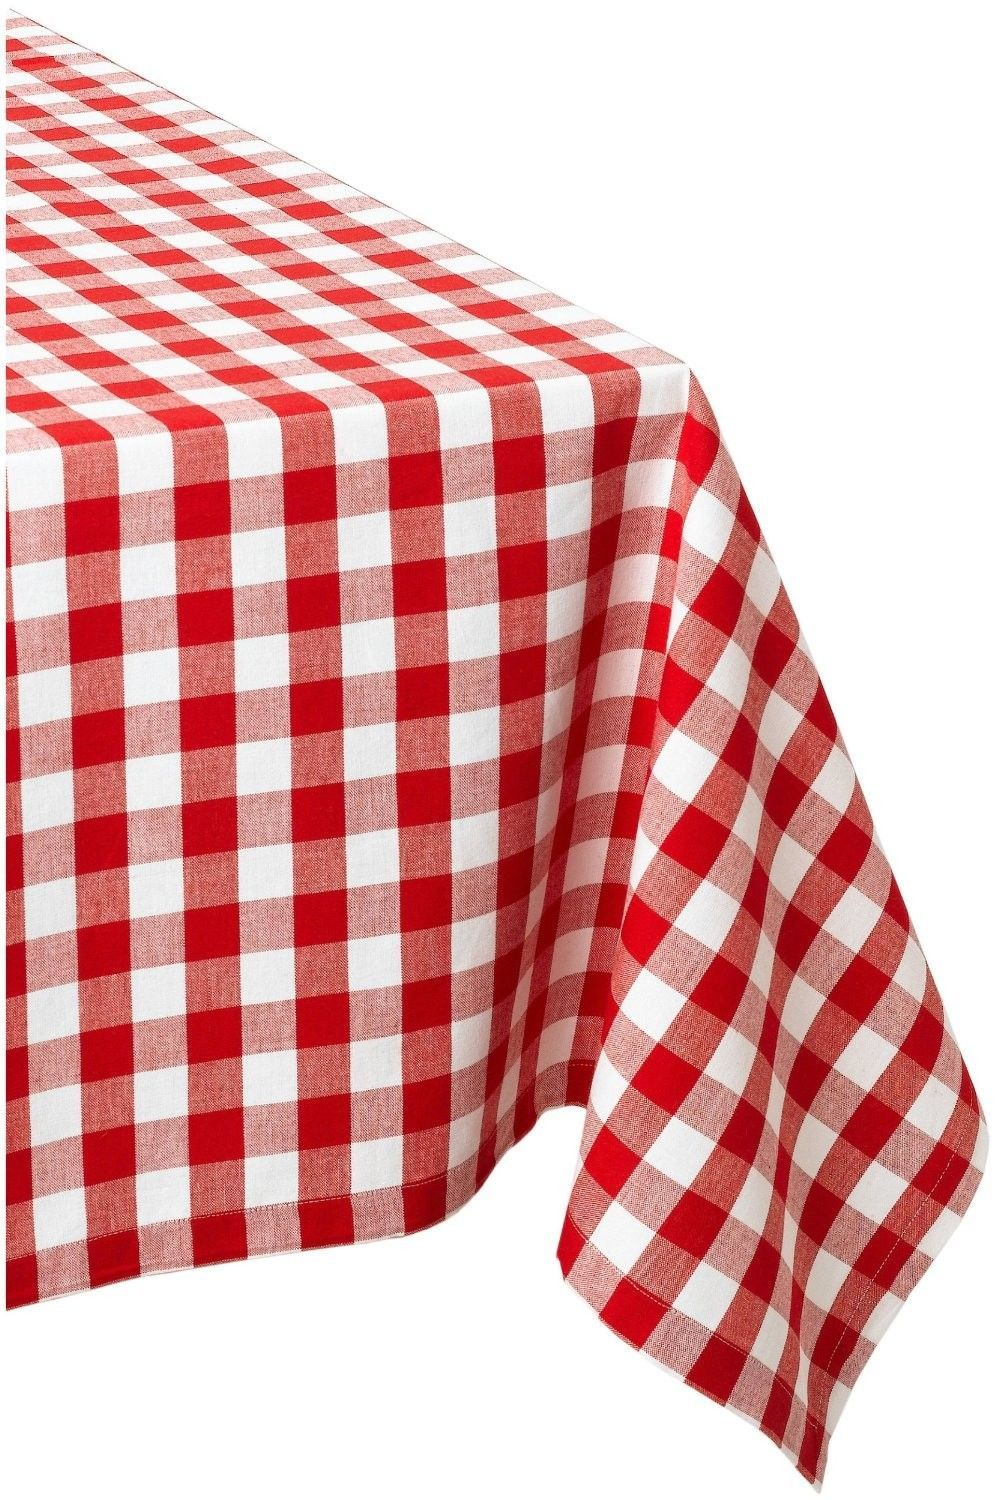 Pin On Table Cloth